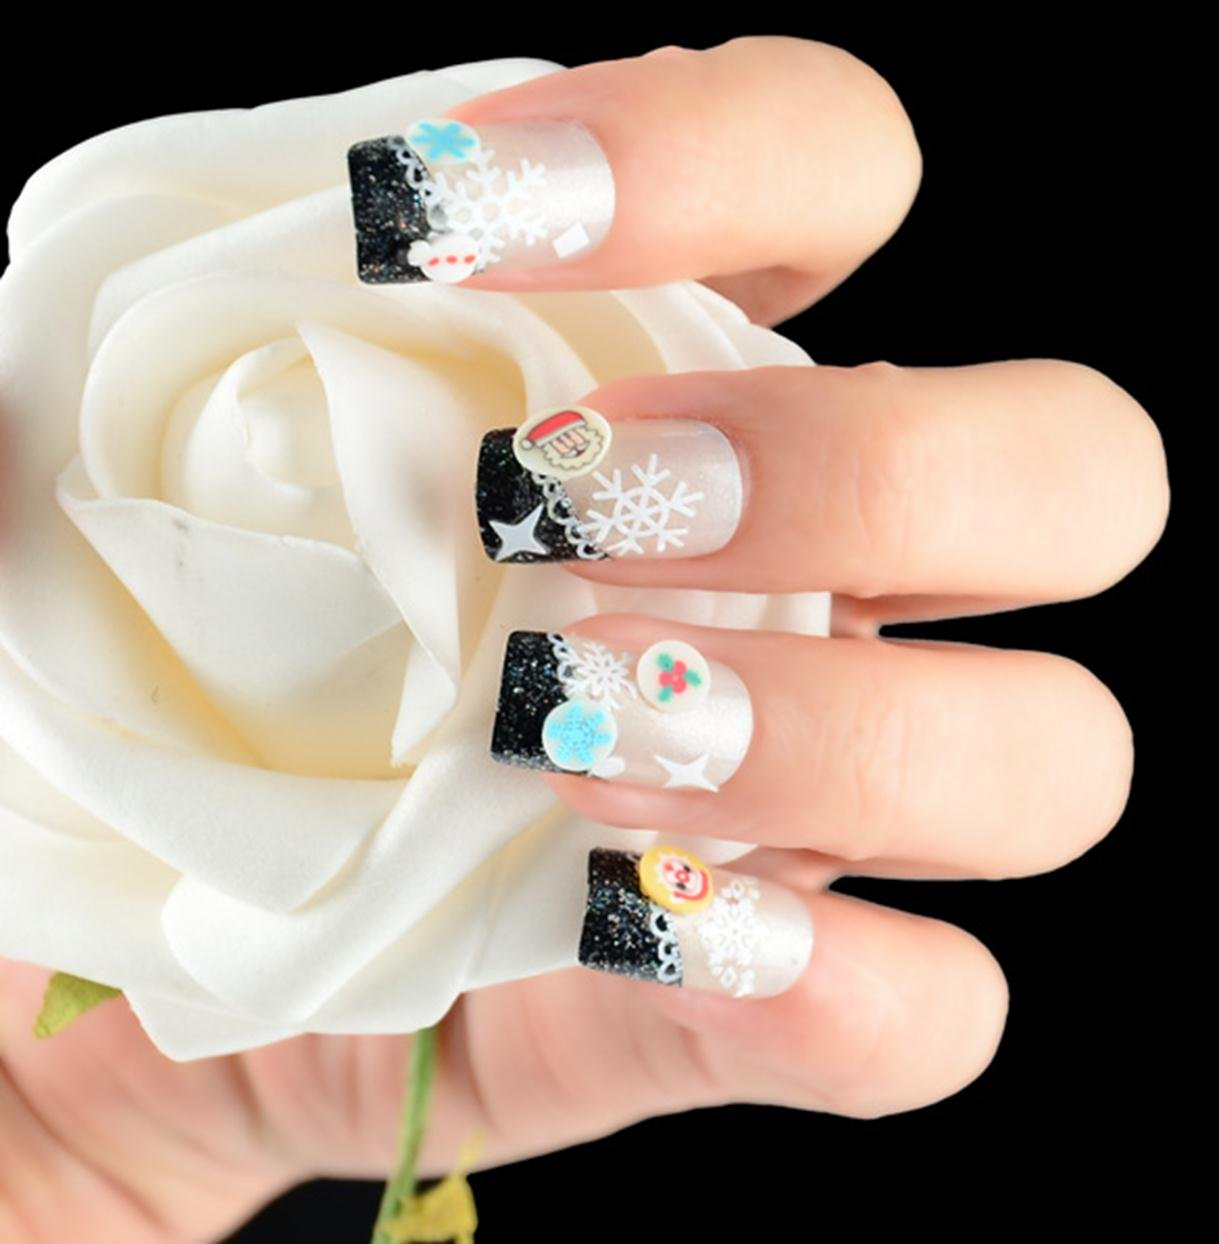 Amazon.com : Christmas Snowflakes Design 3D Nail Art Stickers Decals ...